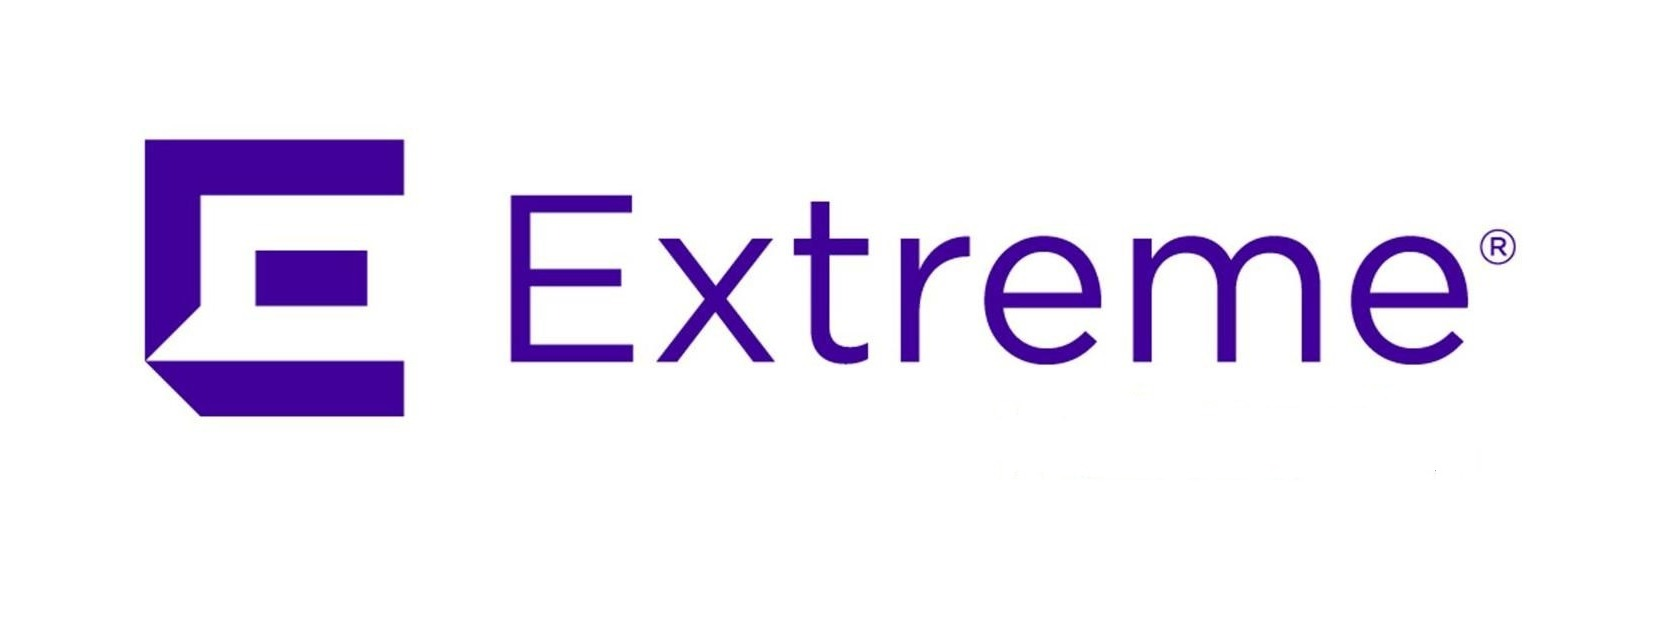 Extreme Networks coupon code